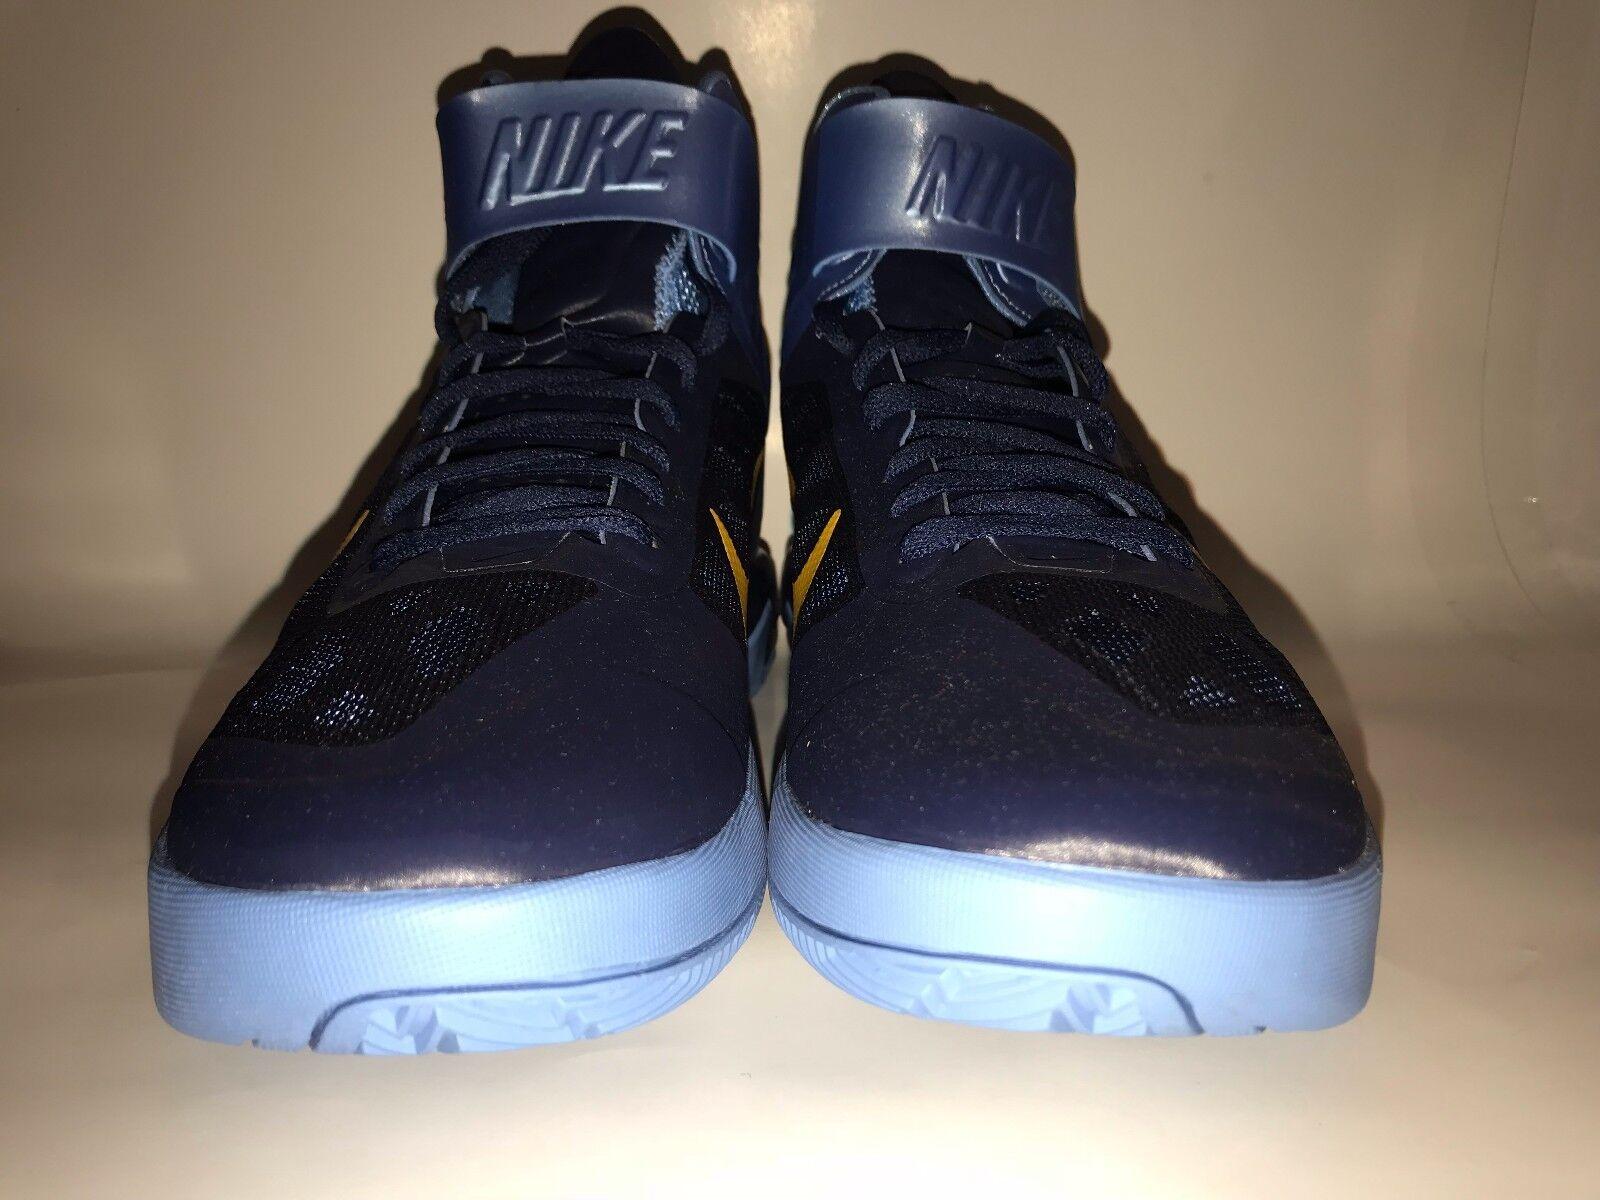 Nike Air Max Fly by Rudy Gay Grizzlies Spurs PE Size 10.5